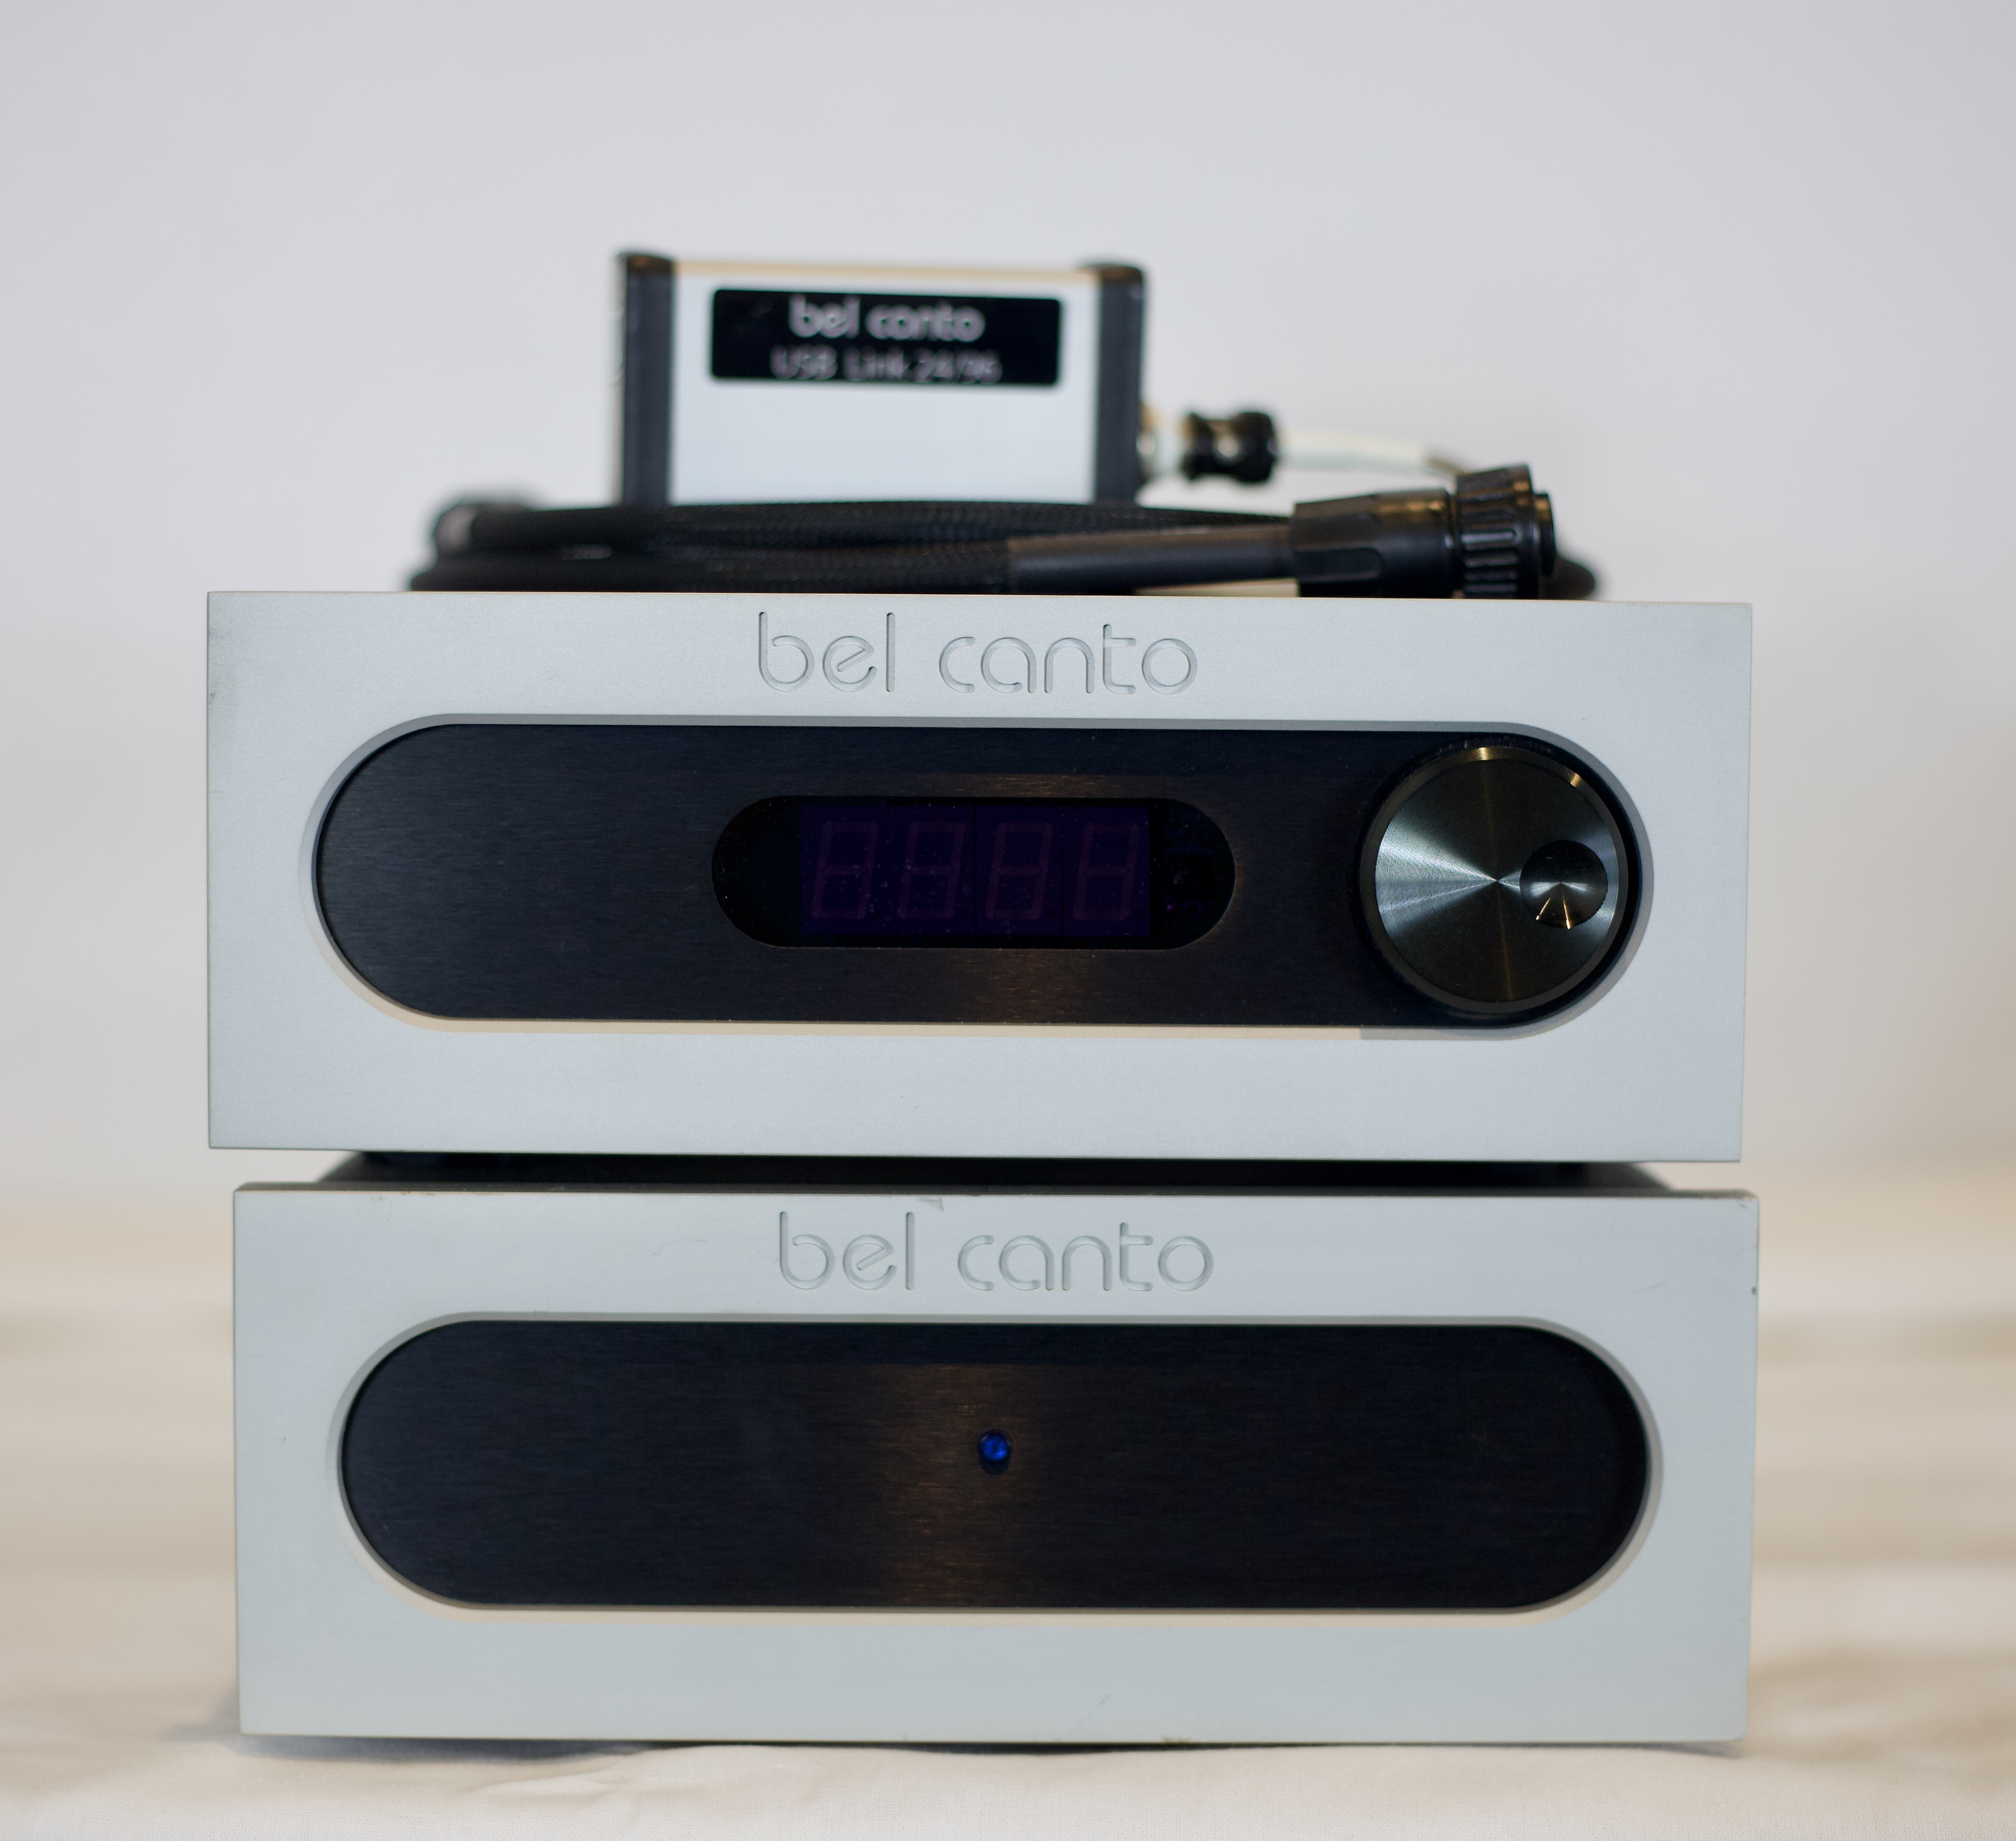 Front View, Bel Canto DAC3VB Battery Supply.